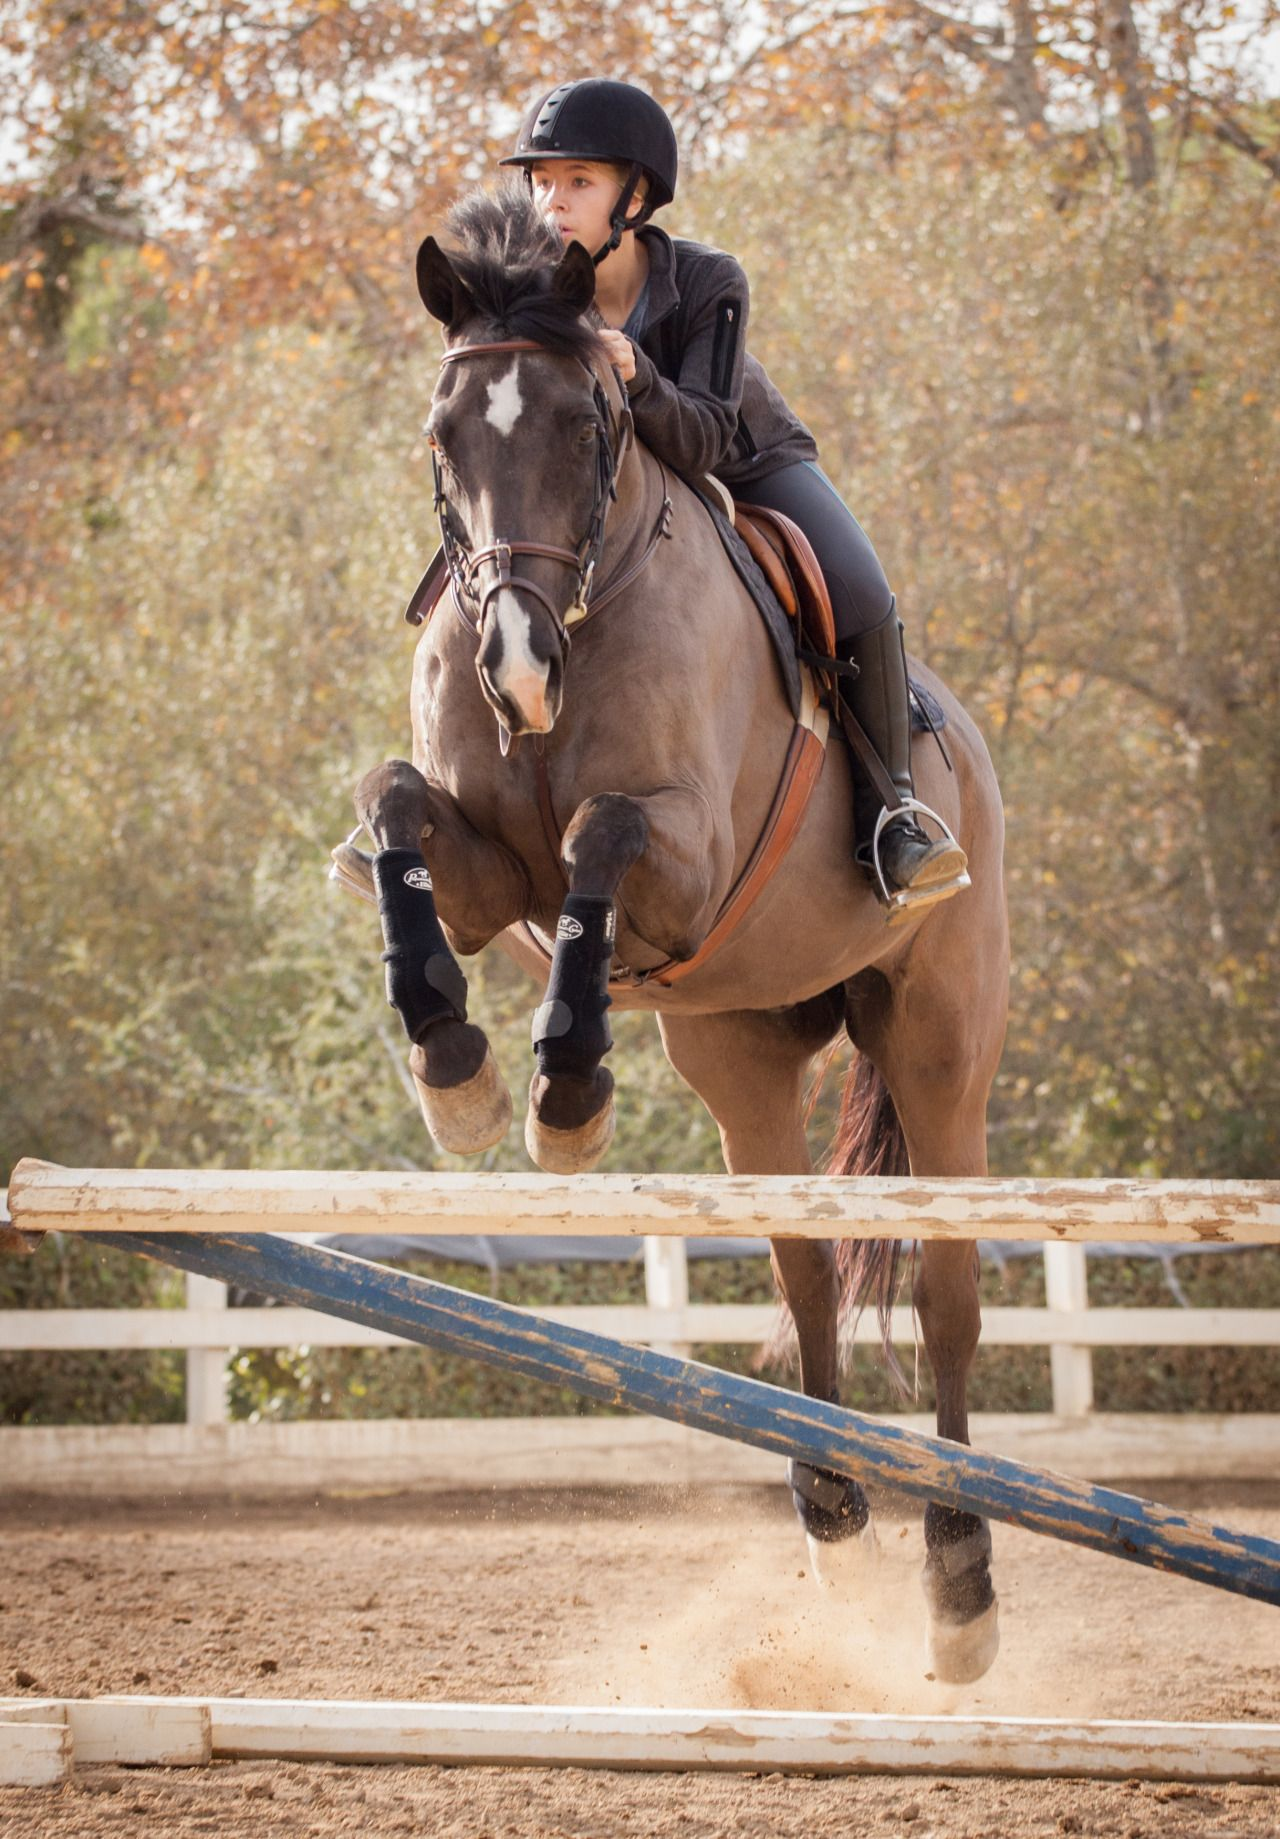 Volcano And I Are Going To The Show In Two Weeks Anyone Else Photographie Equine Saut D Obstacles Photographie Equestre